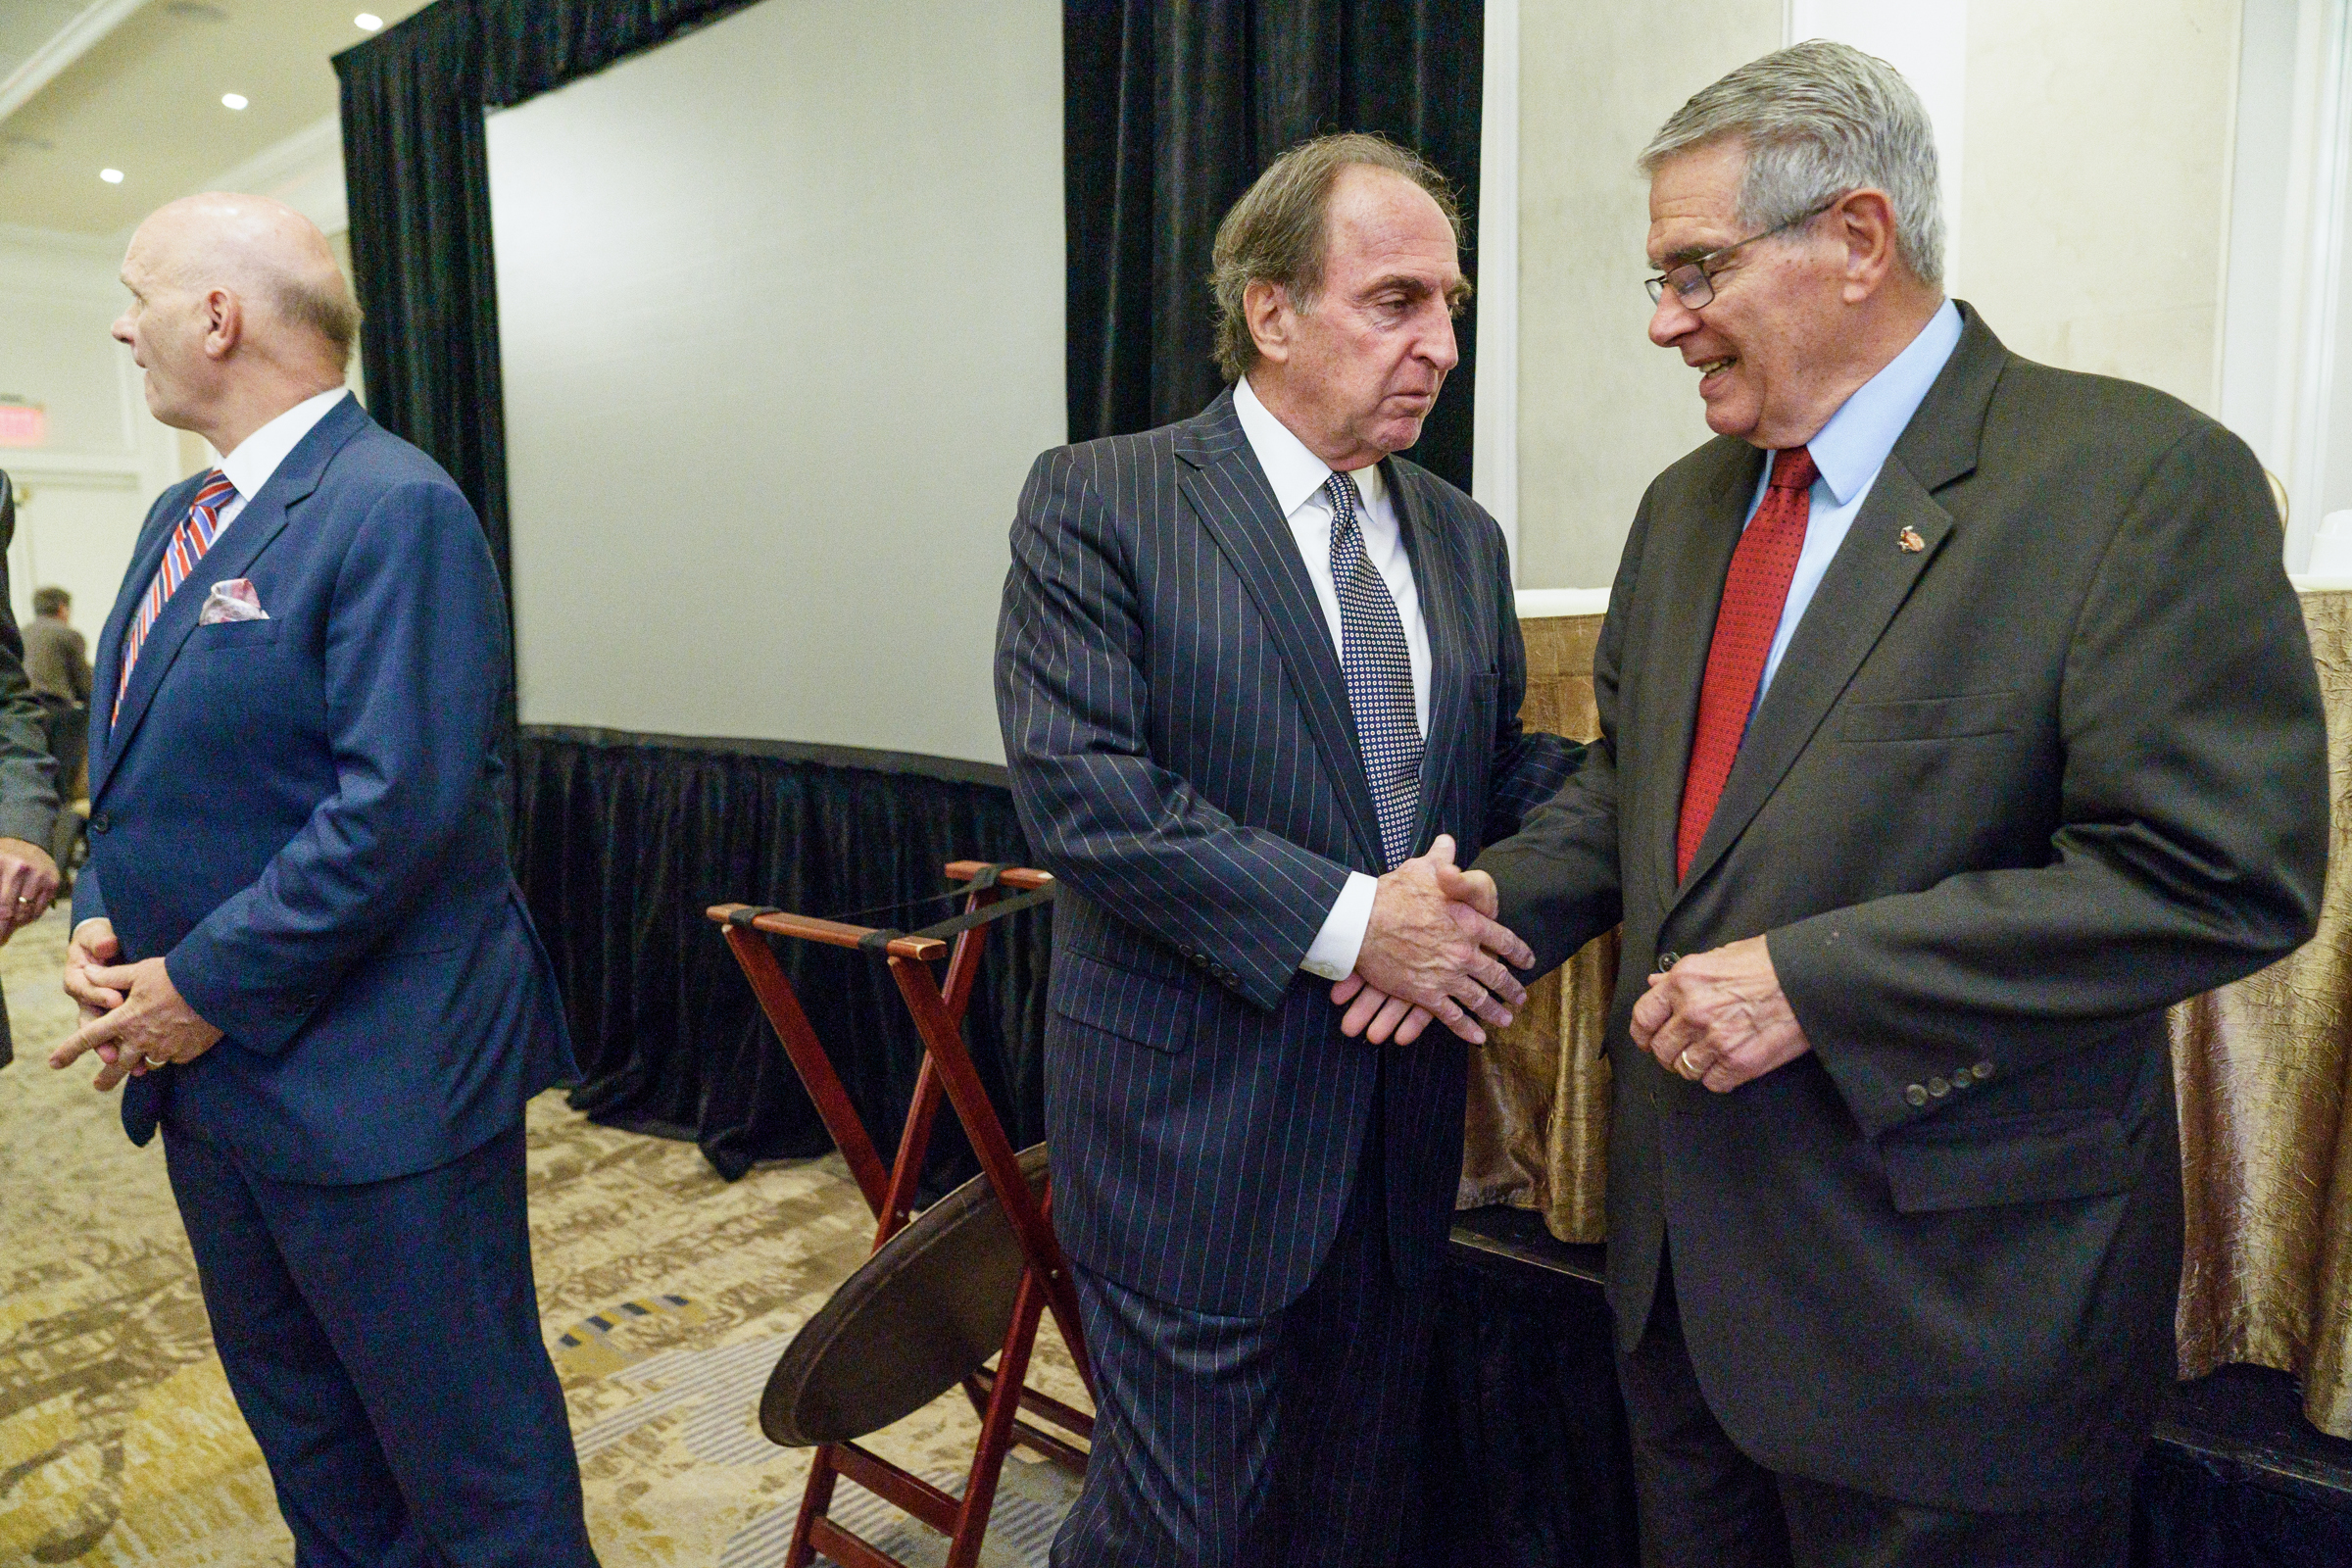 Temple University basketball coach Fran Dunphy, center, shakes hands with Don DiJulia, right, after both men accepted awards at the 7th annual preseason college basketball preview lunch, at the Hilton Hotel in Philadelphia, November 1, 2018. PhiladelphiaÕs six NCAA Division I menÕs basketball coaches and the American Cancer Society hosted the 7th annual preseason college basketball preview lunch. JESSICA GRIFFIN / Staff Photographer